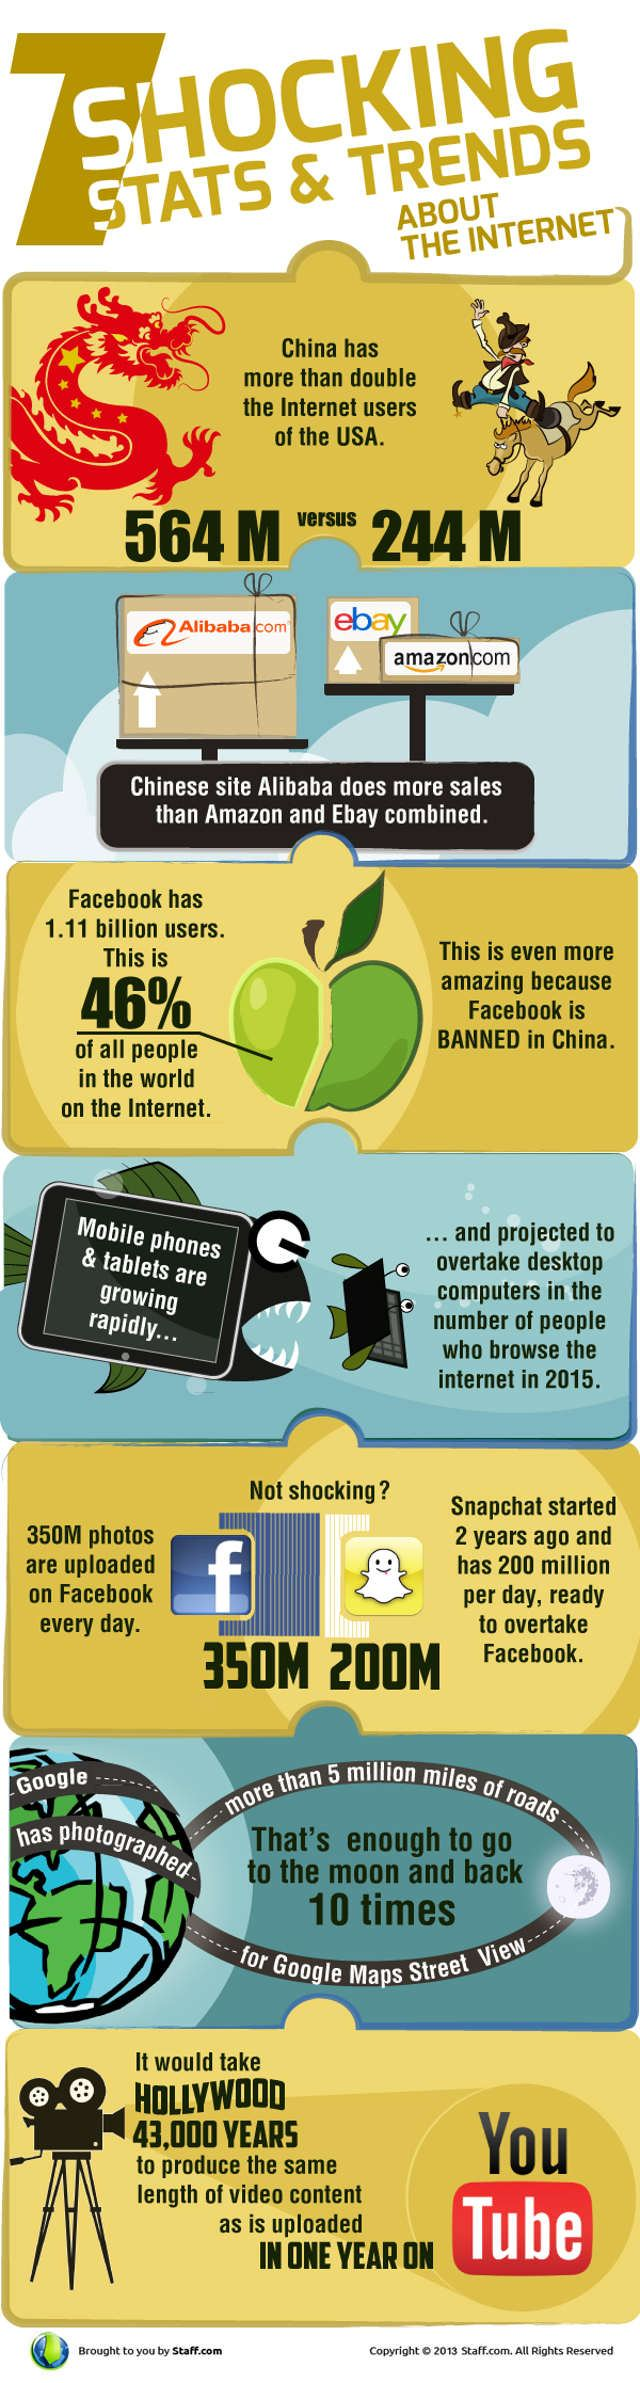 7 Shocking Stats about the Internet 2